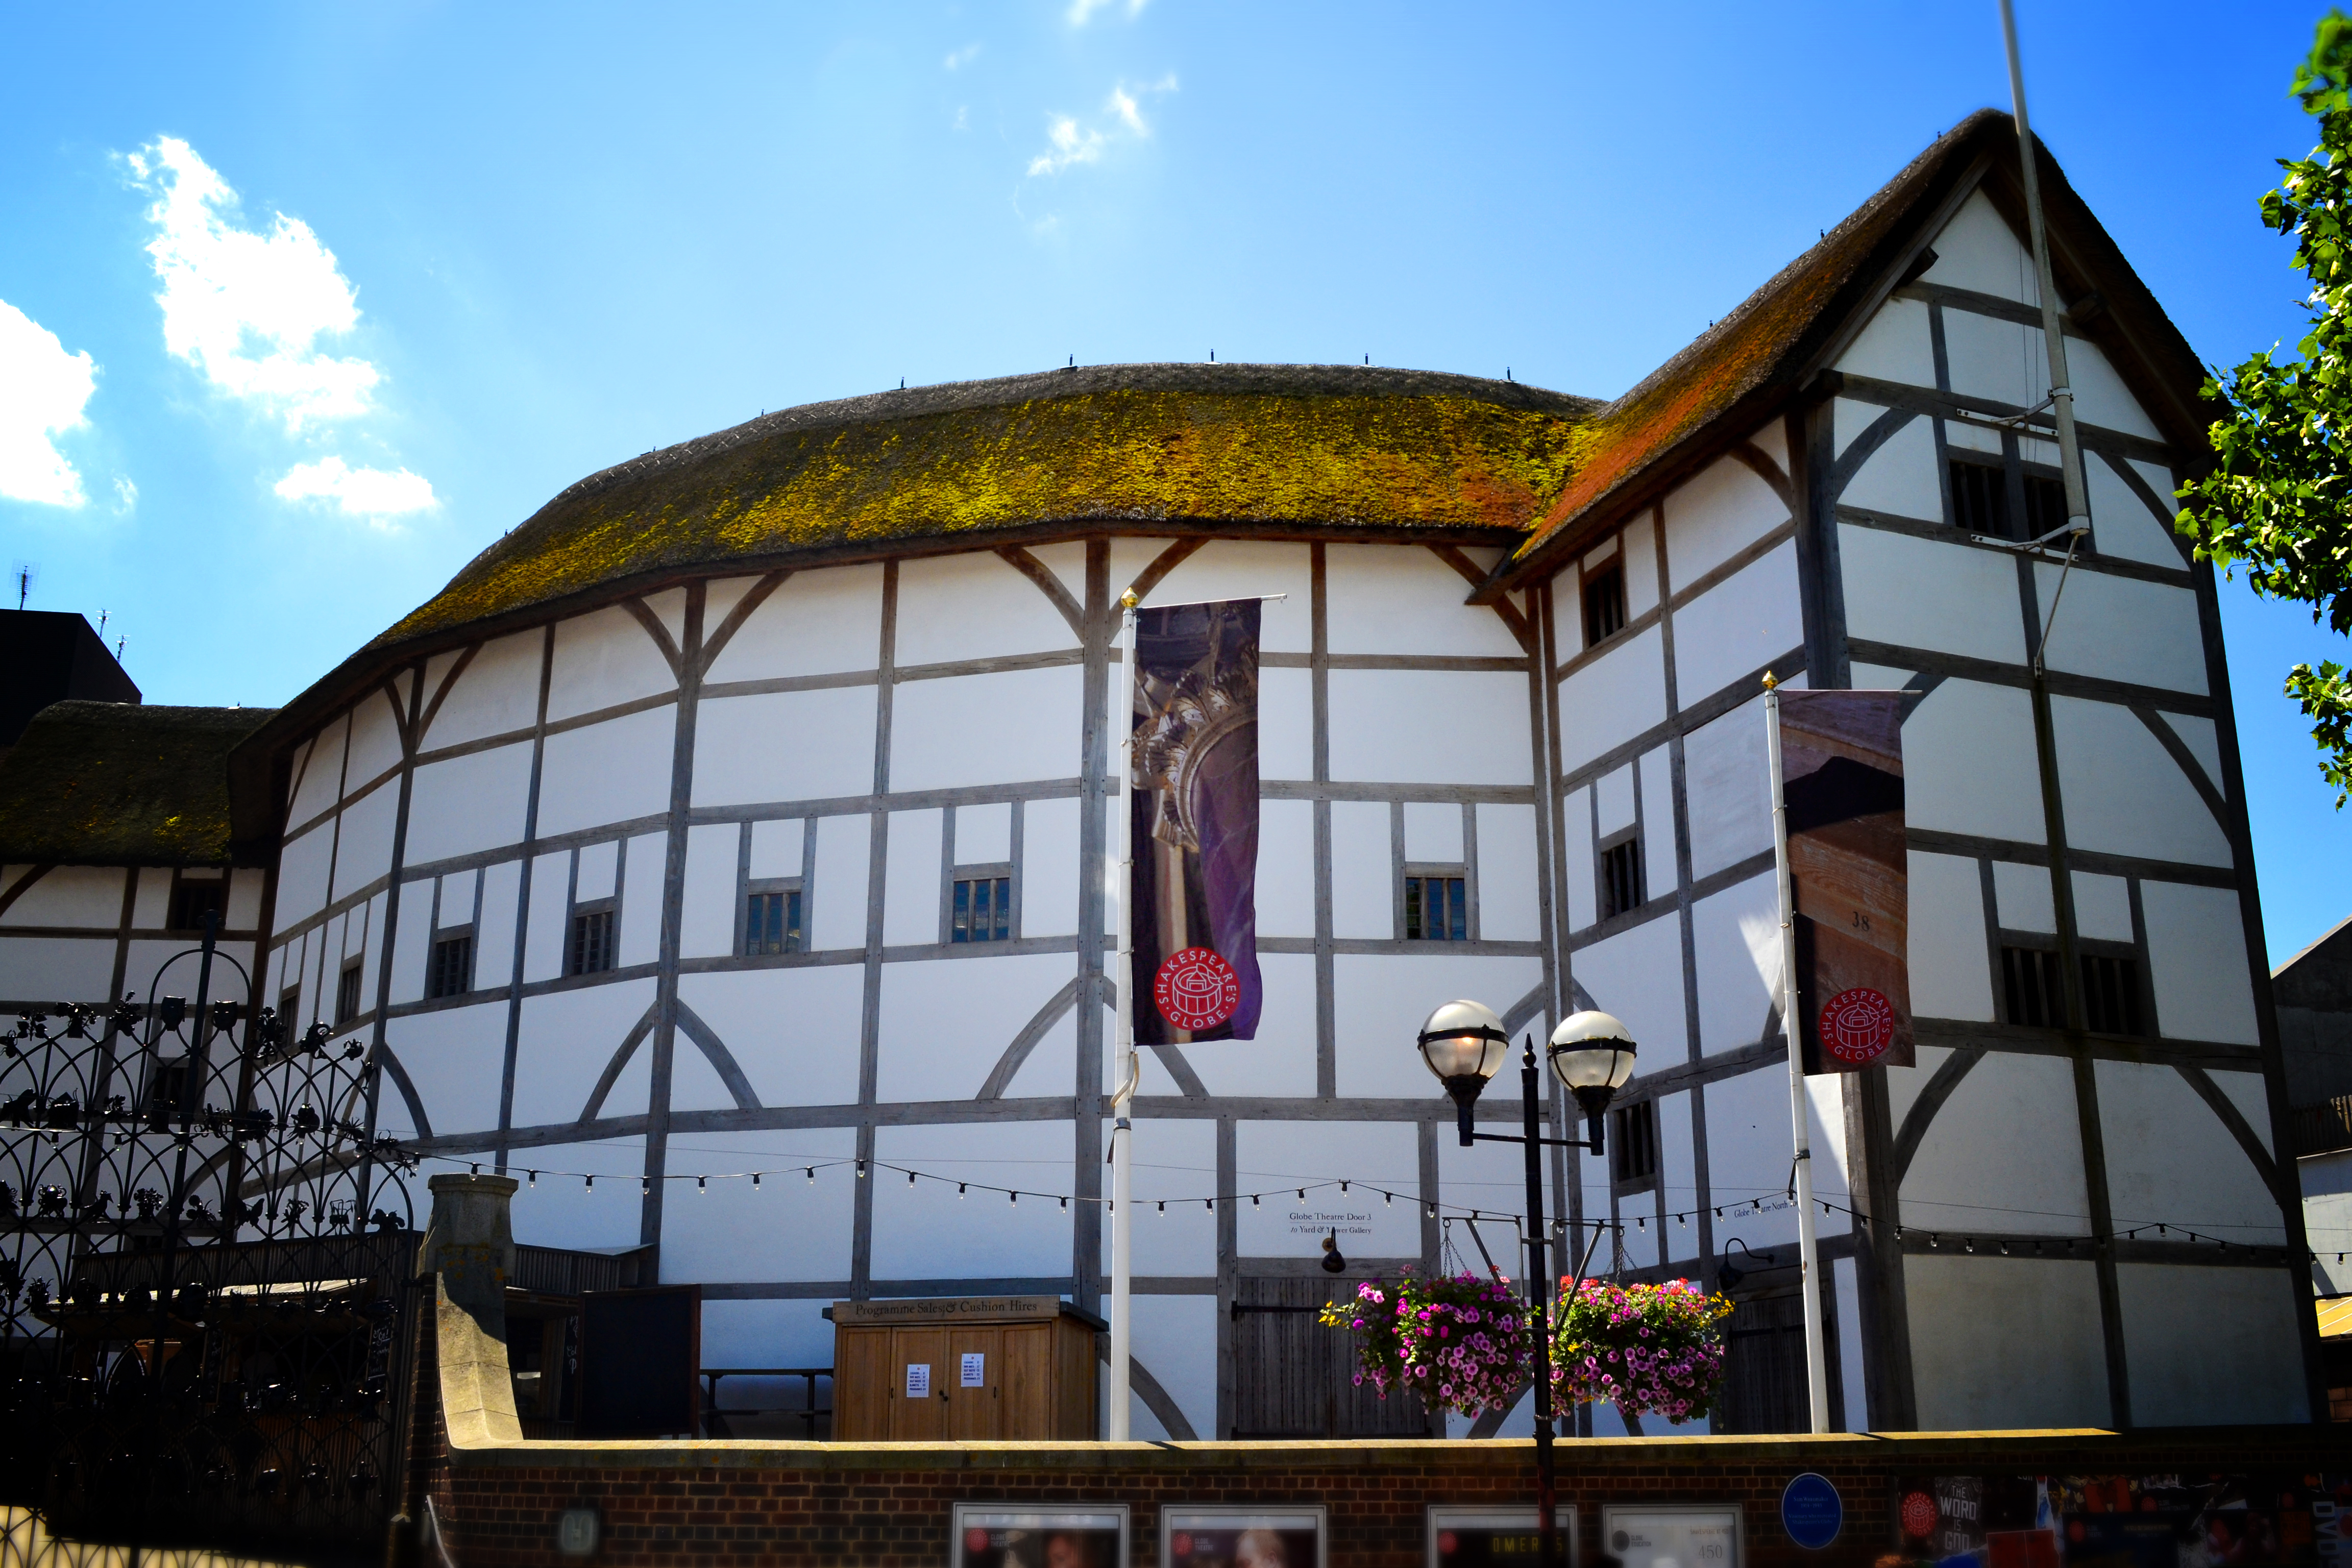 Shakespeares globe in pictures shakespeares globe malvernweather Images